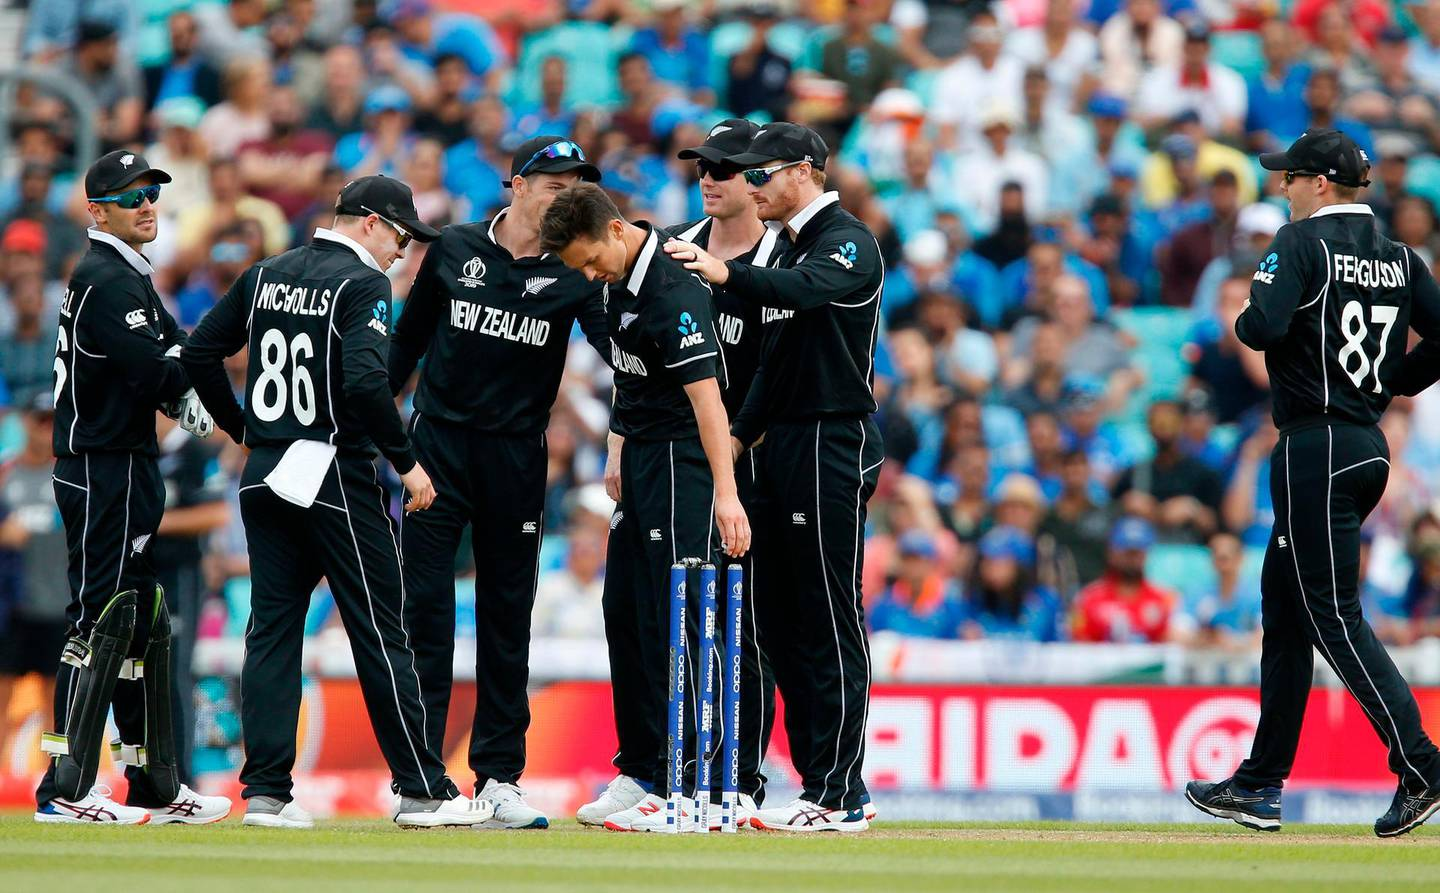 New Zealand's Trent Boult (C) celebrates bowling India's KL Rahul for 6 runsduring the 2019 Cricket World Cup warm up match between India and New Zealand at The Oval in London on May 25, 2019. / AFP / Ian KINGTON